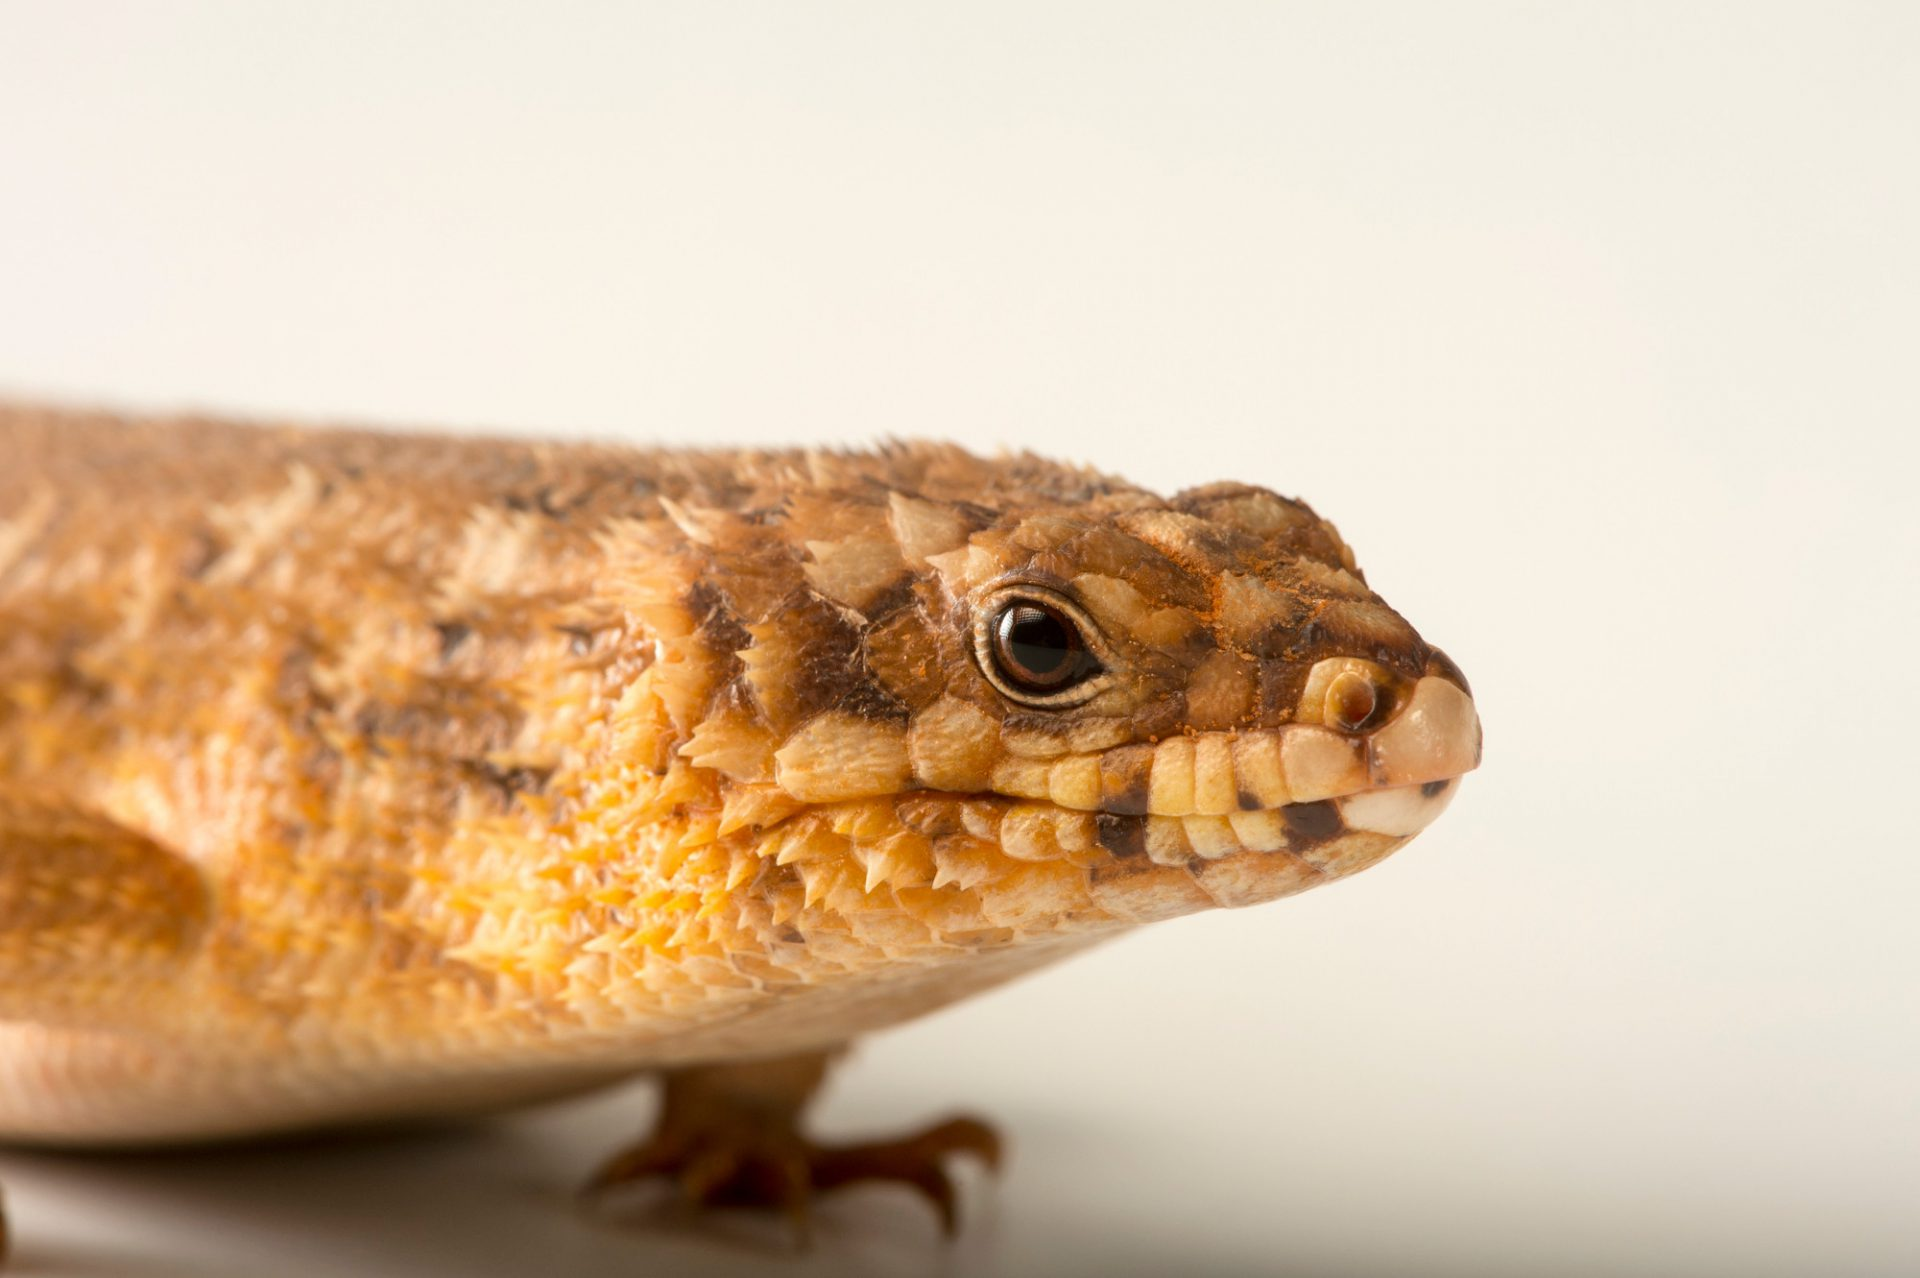 Picture of a Hosmer's spiny-tailed skink (Egernia hosmeri) at Wild Life Sydney Zoo.